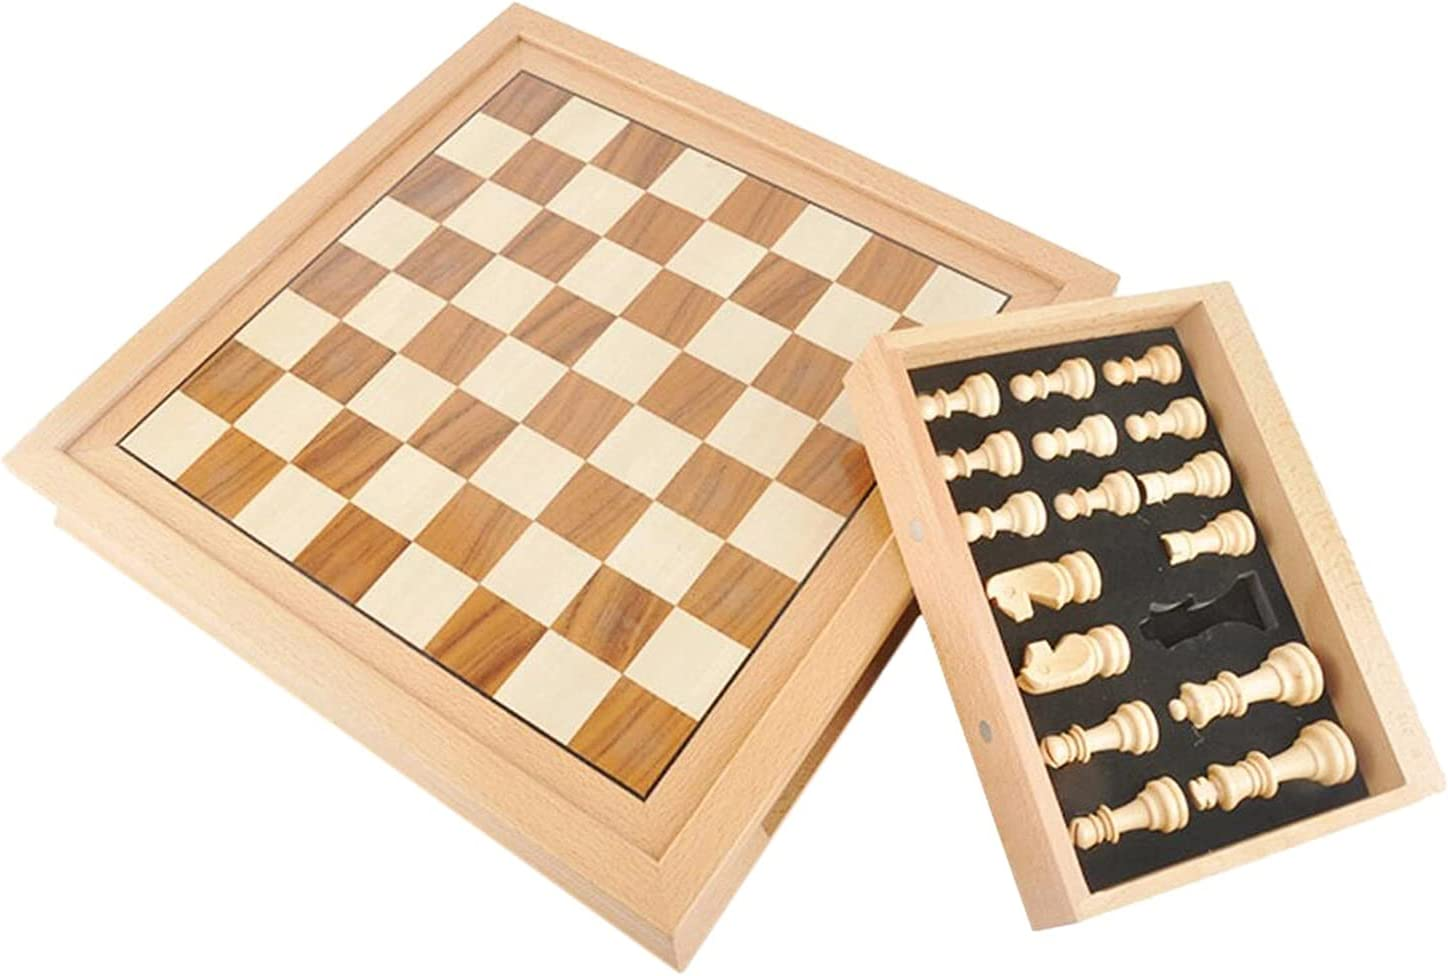 ZZHH Wooden Be super welcome Soldering Chessboard Walnut Solid Board Chess Wood Game Intern